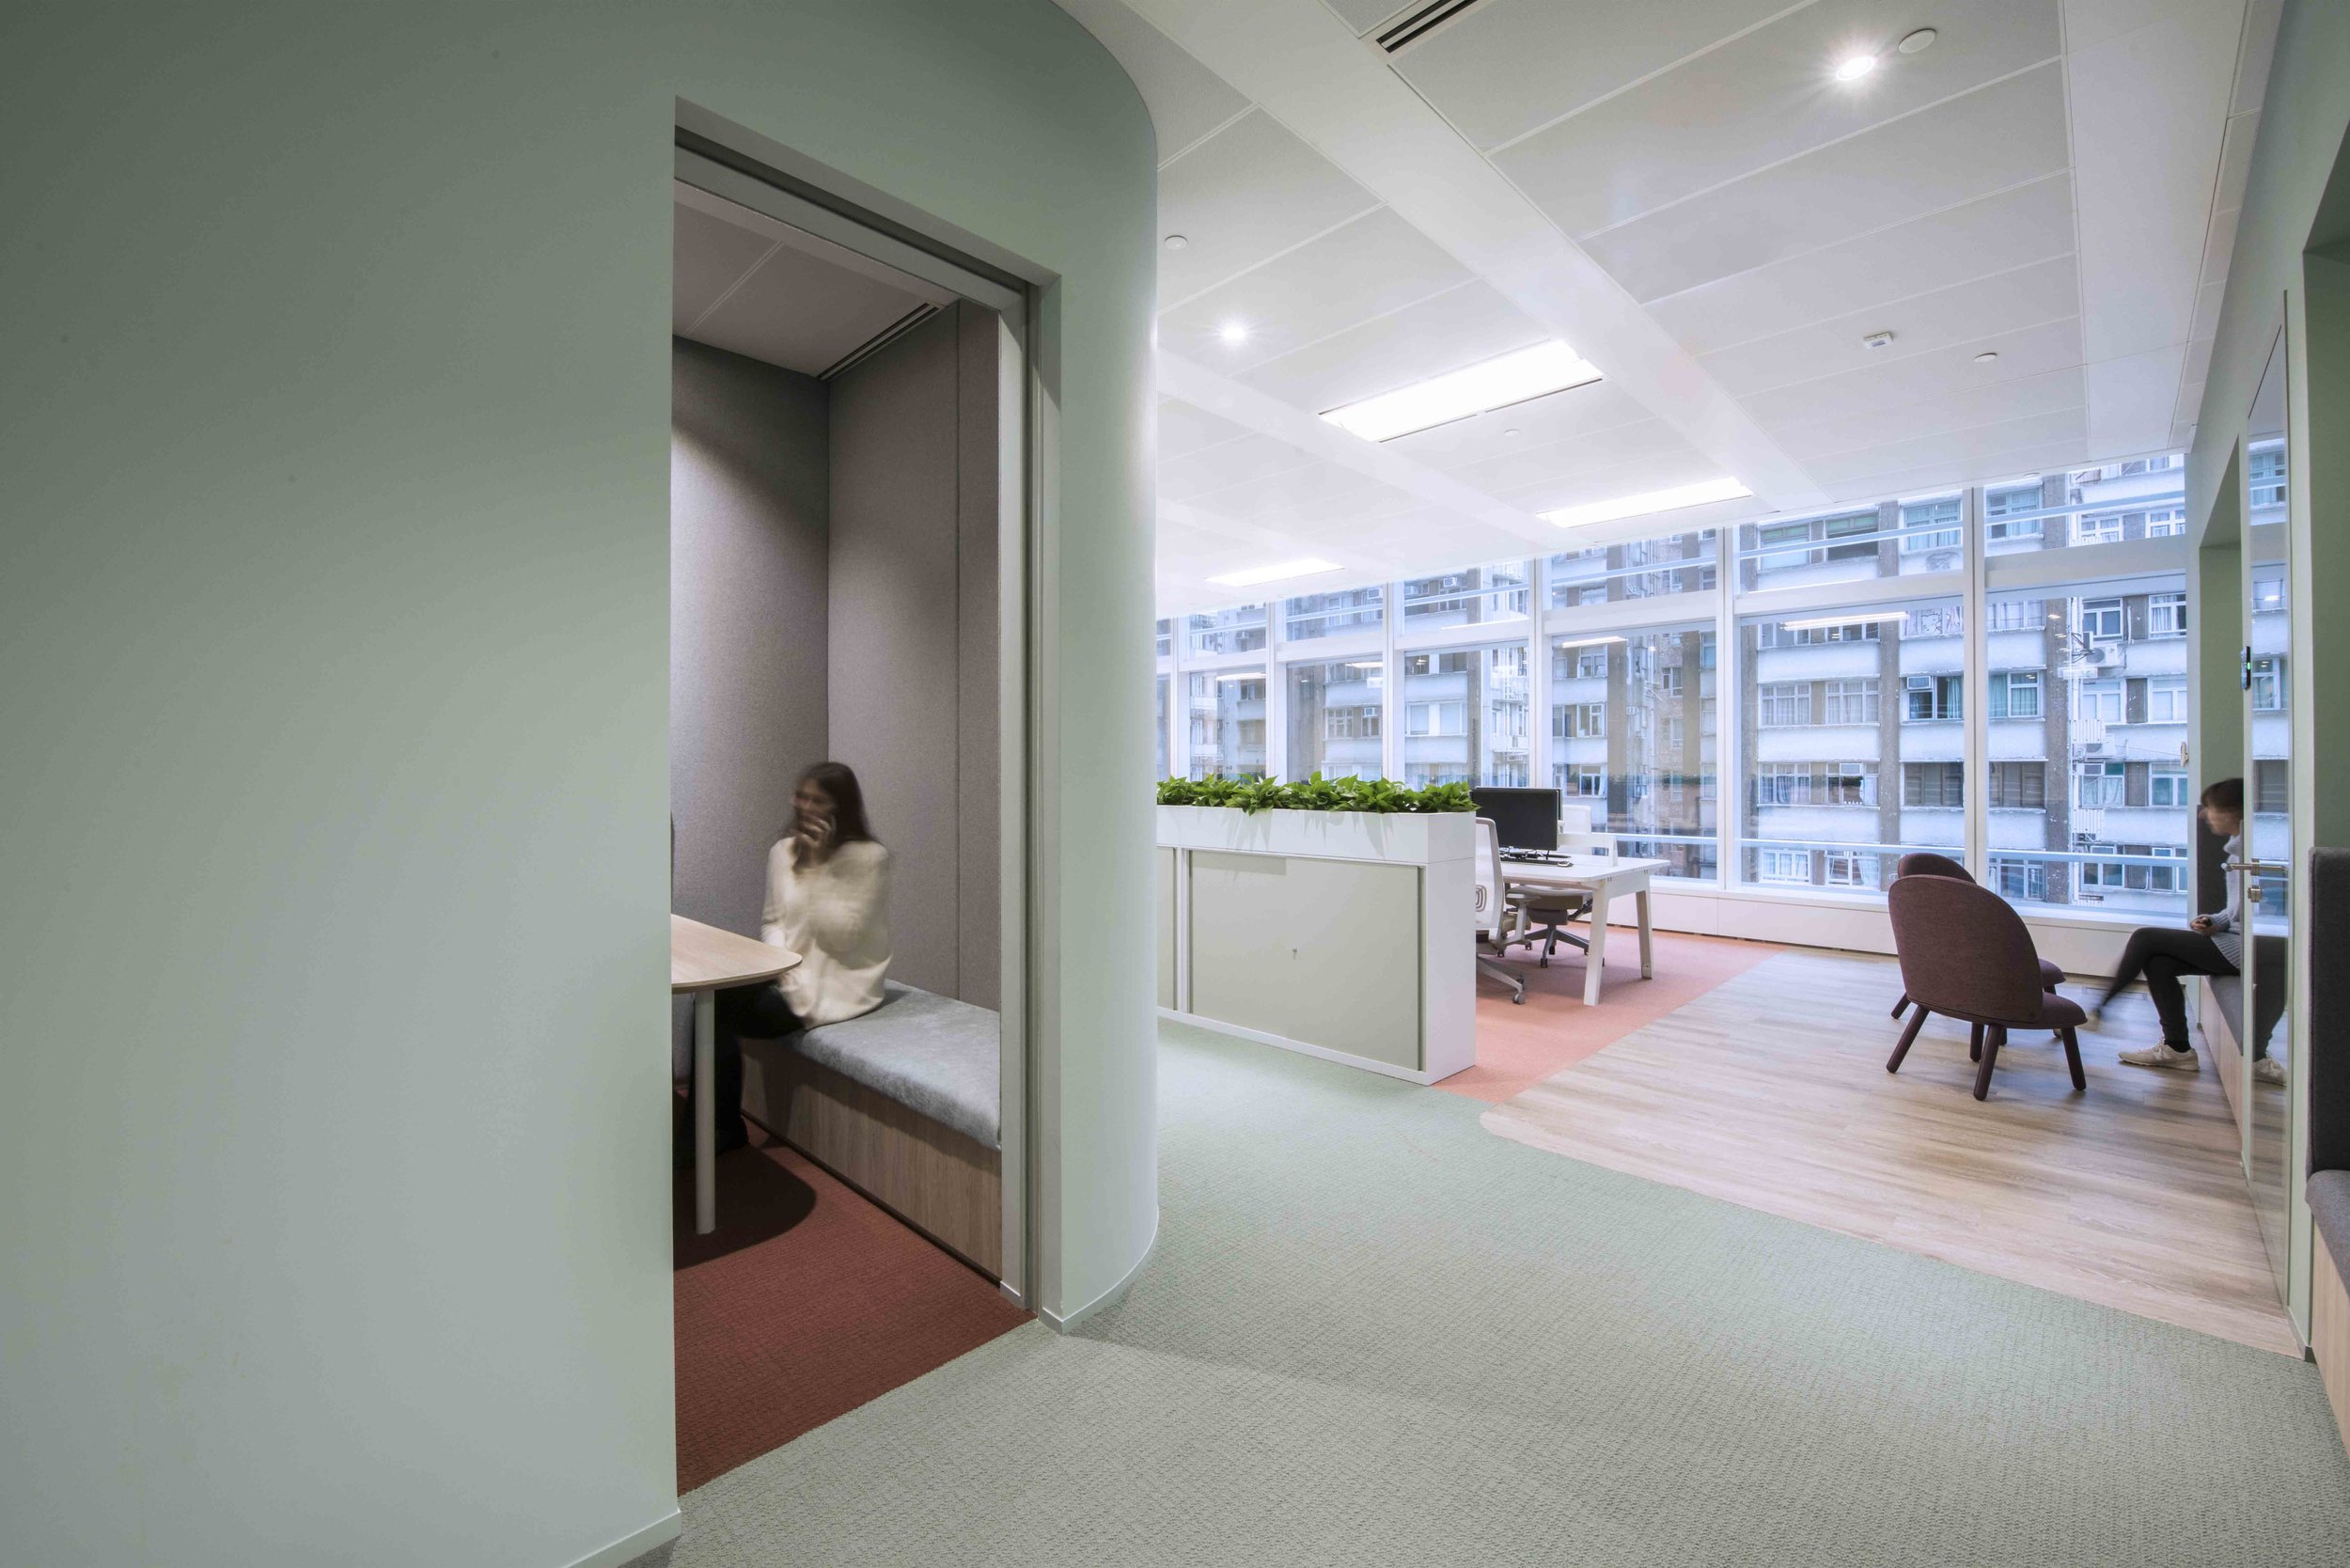 Various break out spaces are inserted into the environment such as in-wall niche seating, lounge furniture, focus booths, and meeting rooms of various sizes